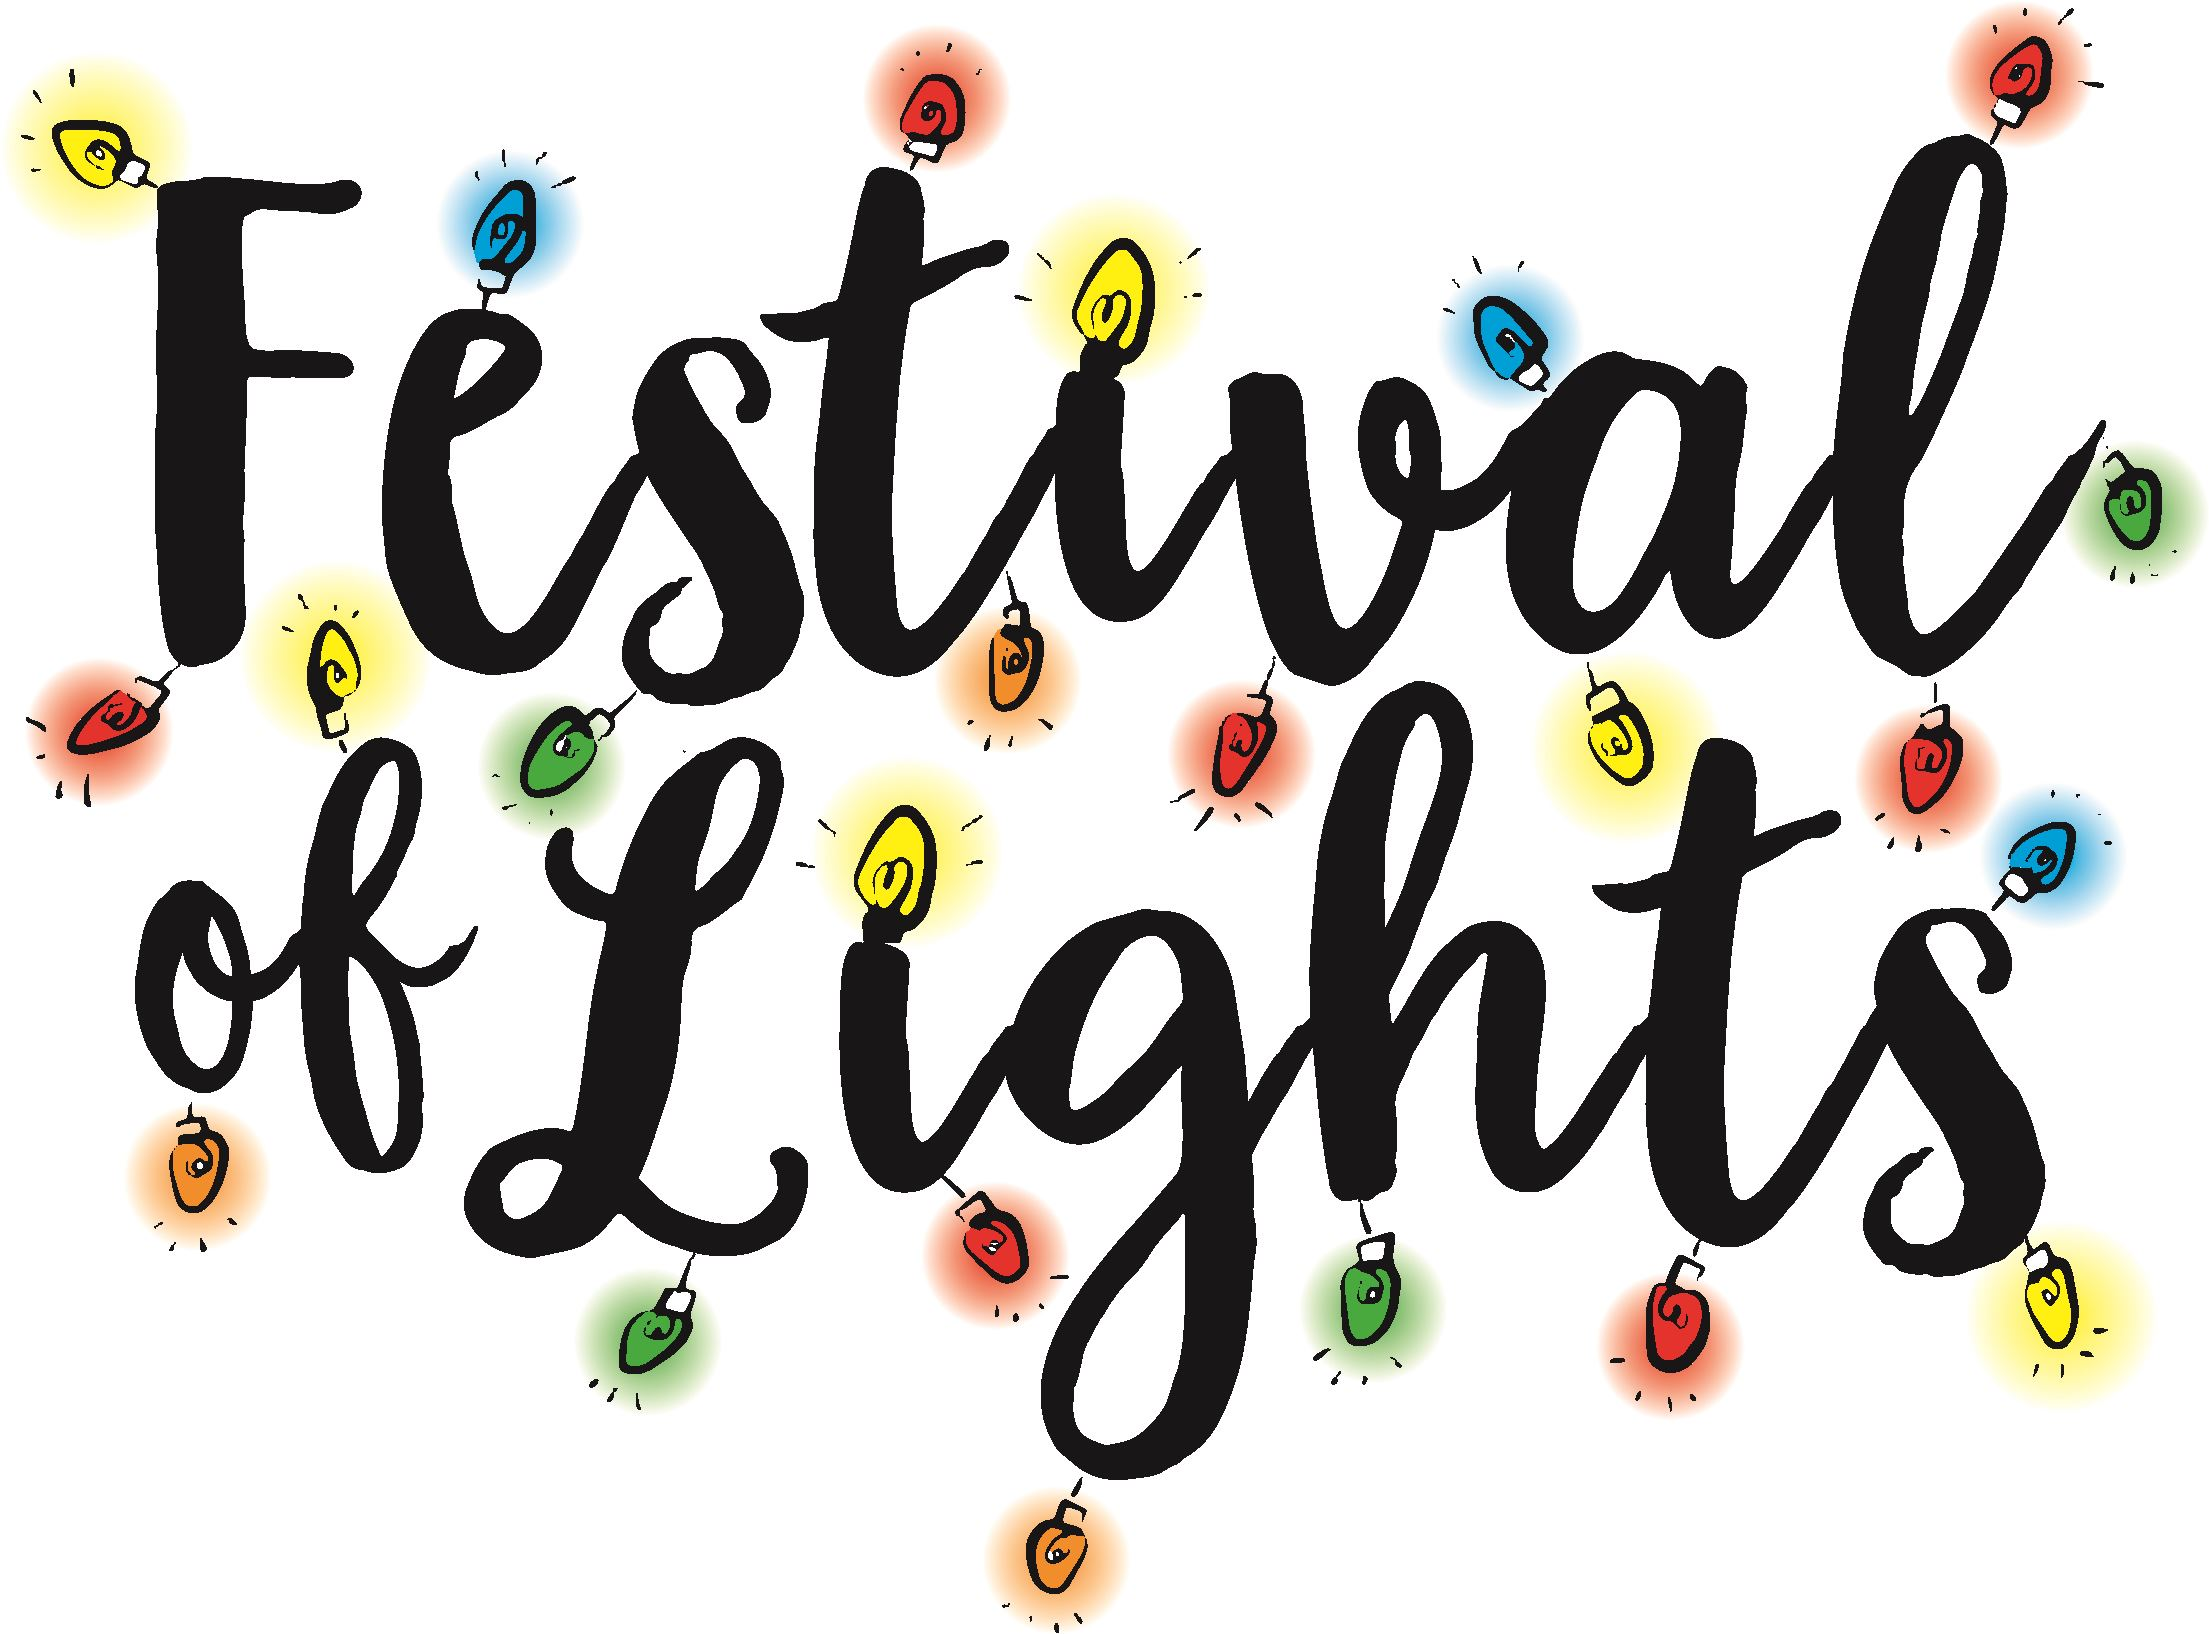 Festival of Lights (new logo)